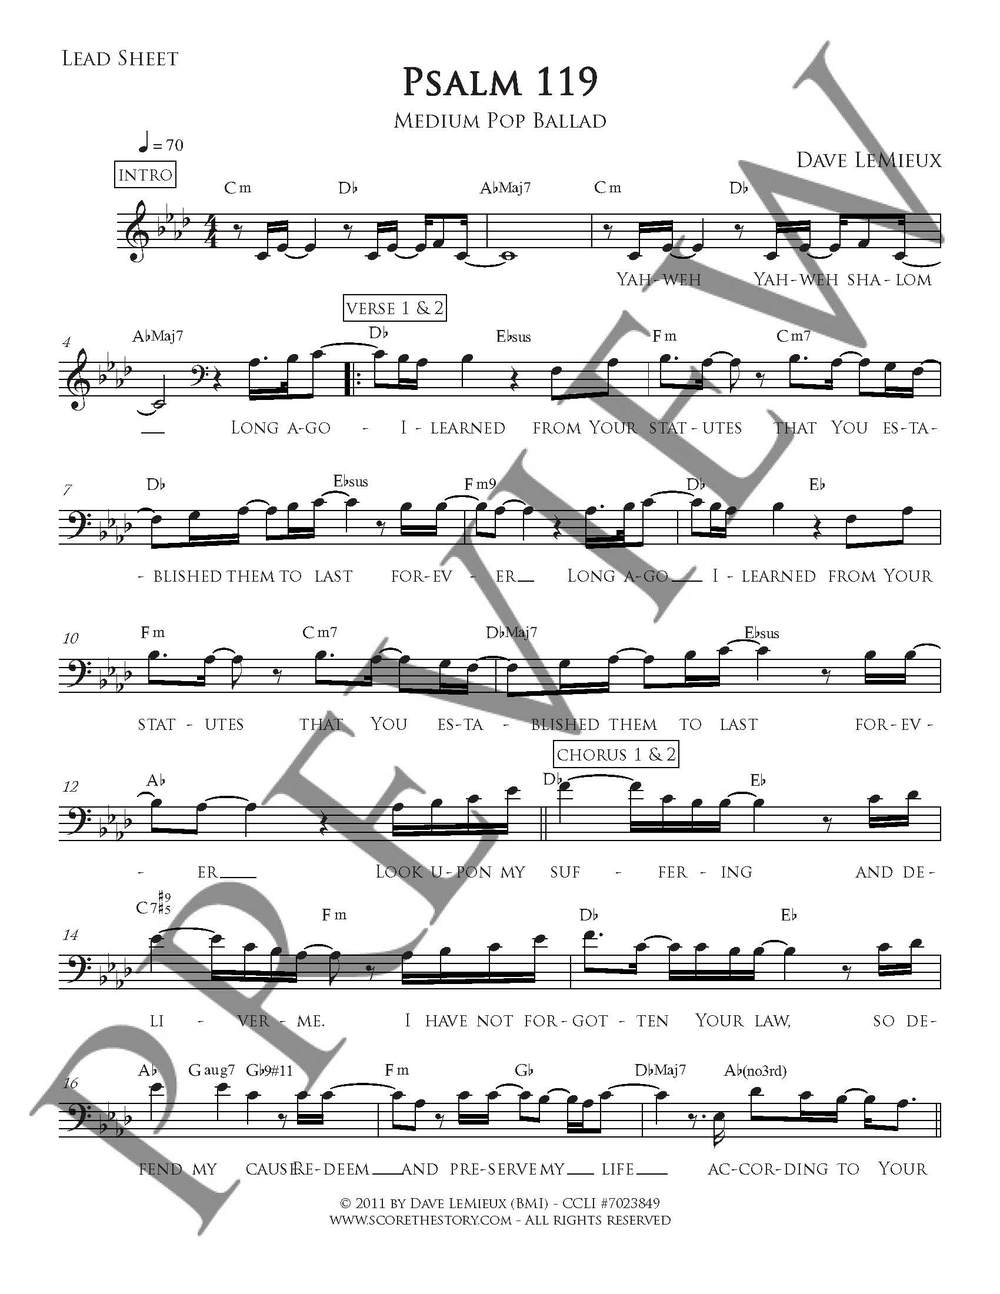 Lead sheet preview